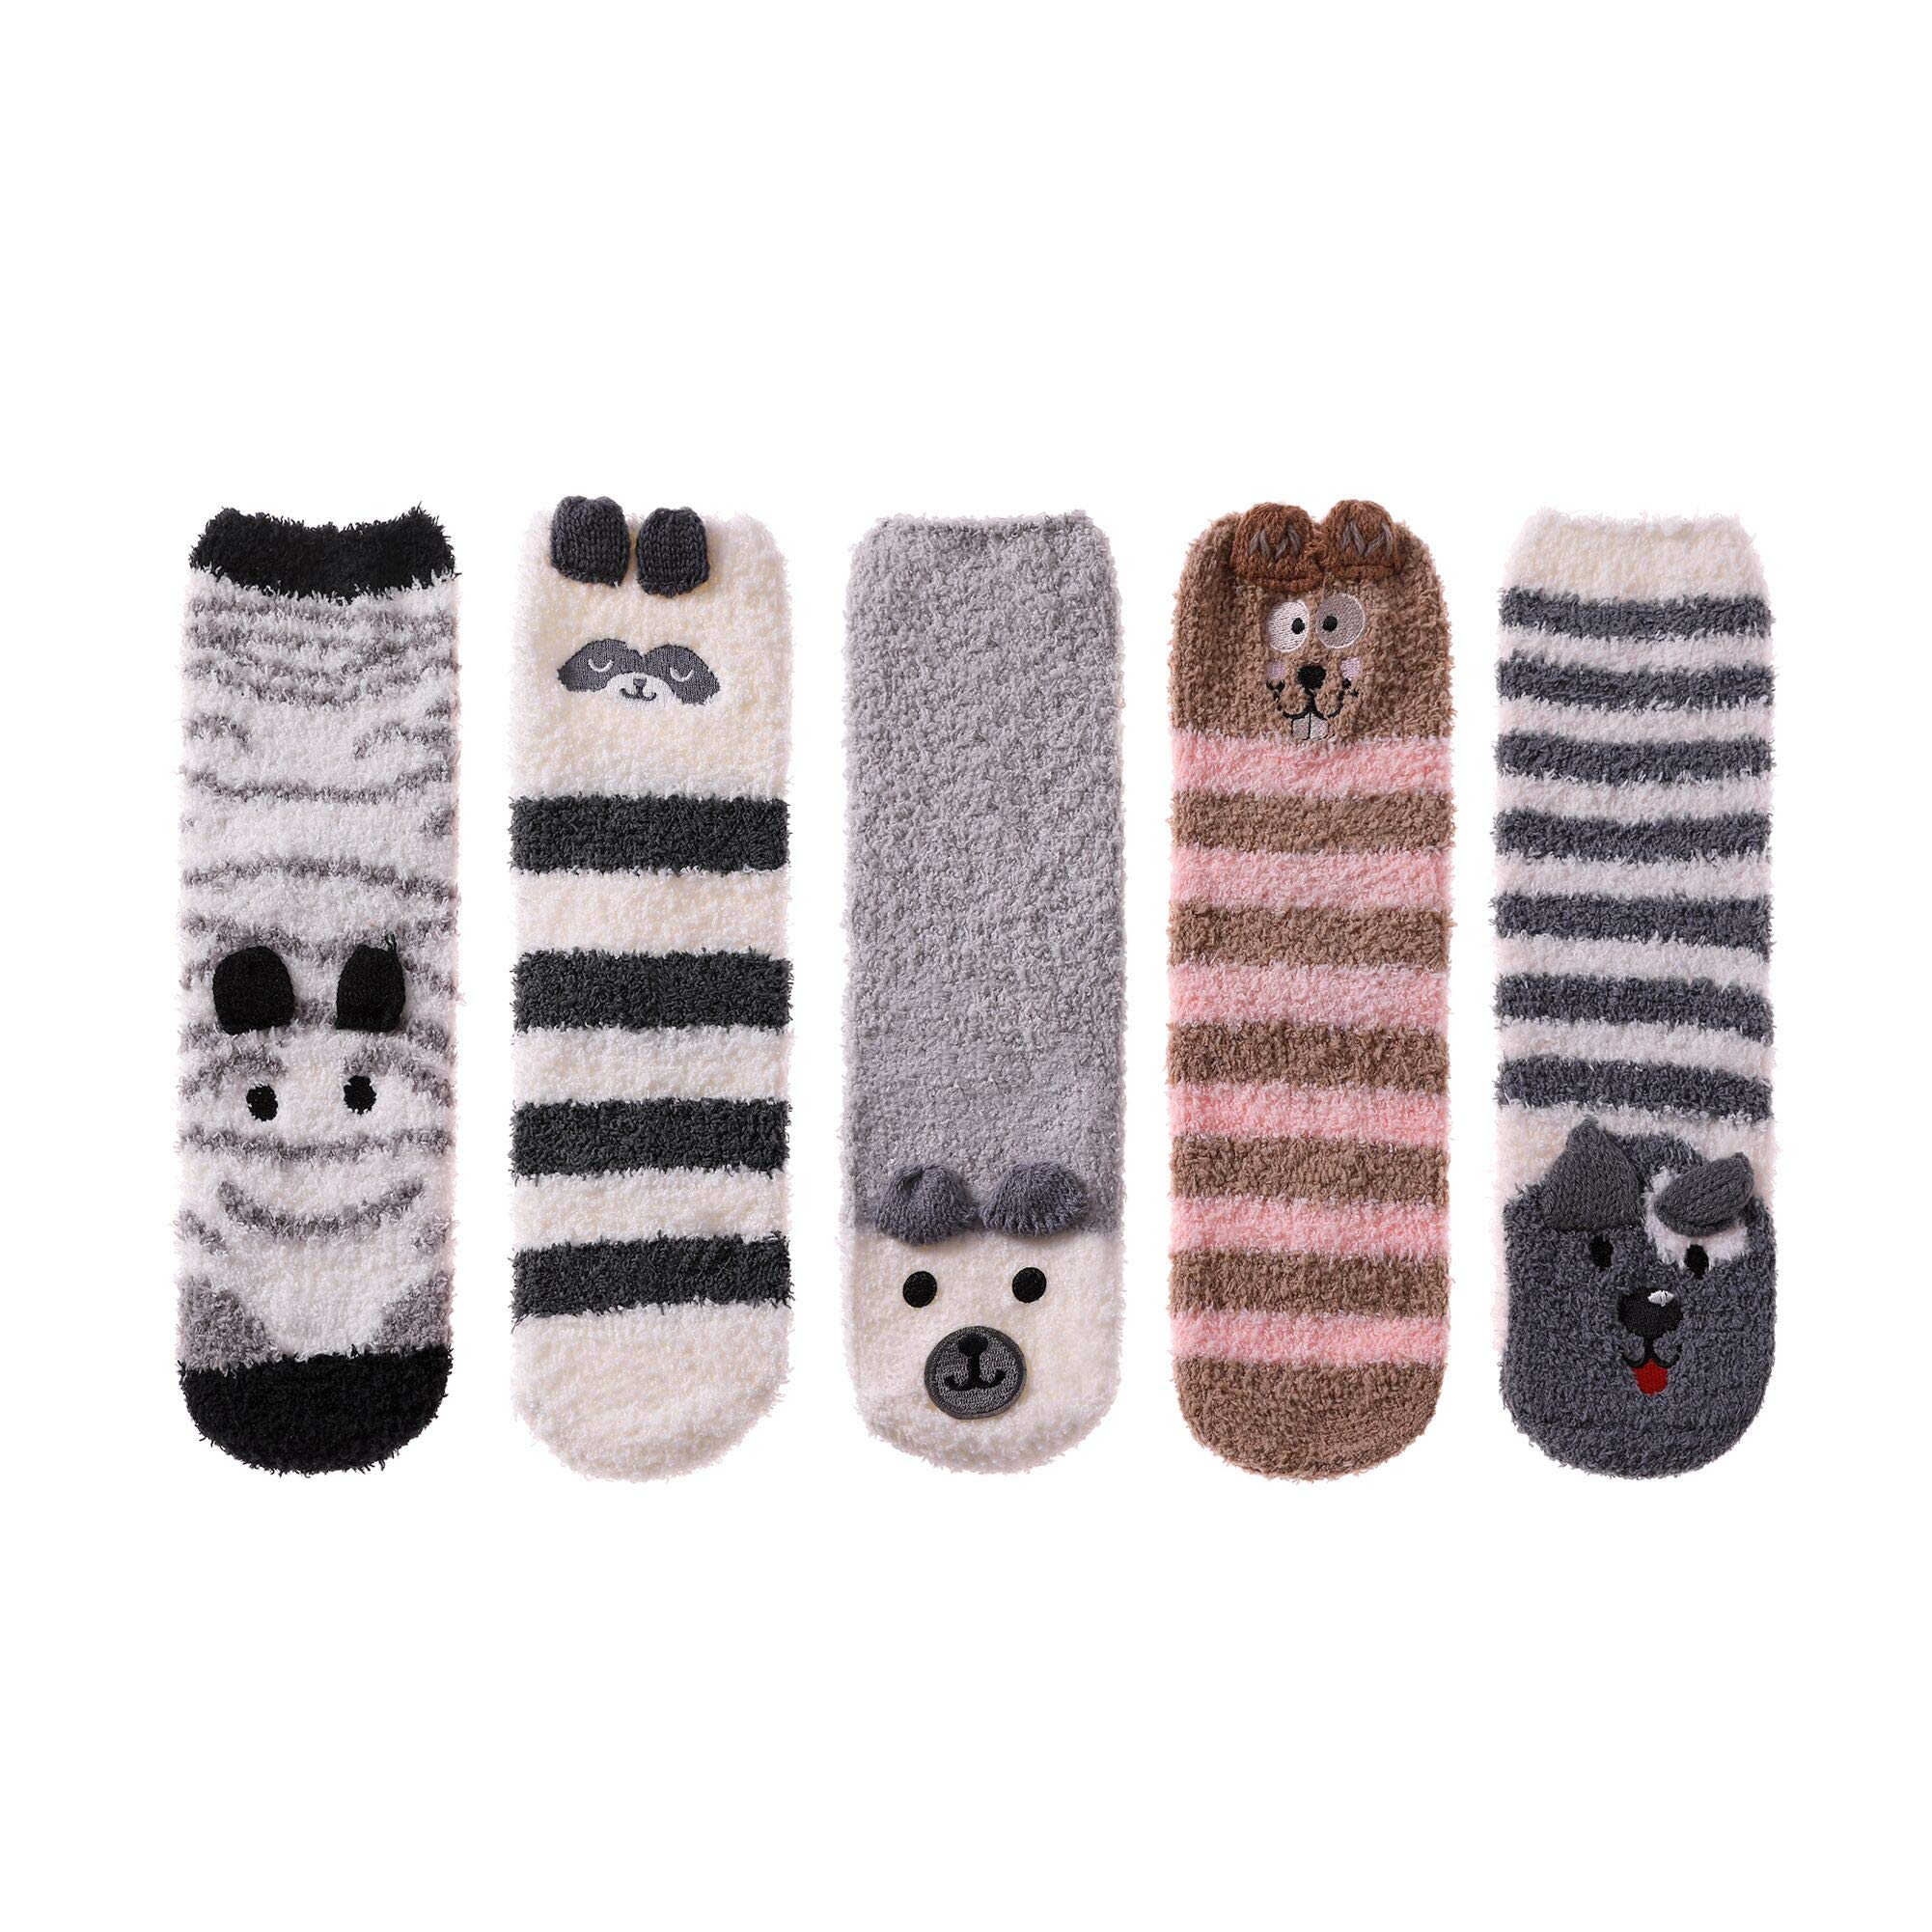 LINEMIN Women Girls Super Soft Warm Cute 3D Animals Slipper Sleeping Winter Crew Fuzzy Socks Value Pack (5 Pack Stripe Gray Color)